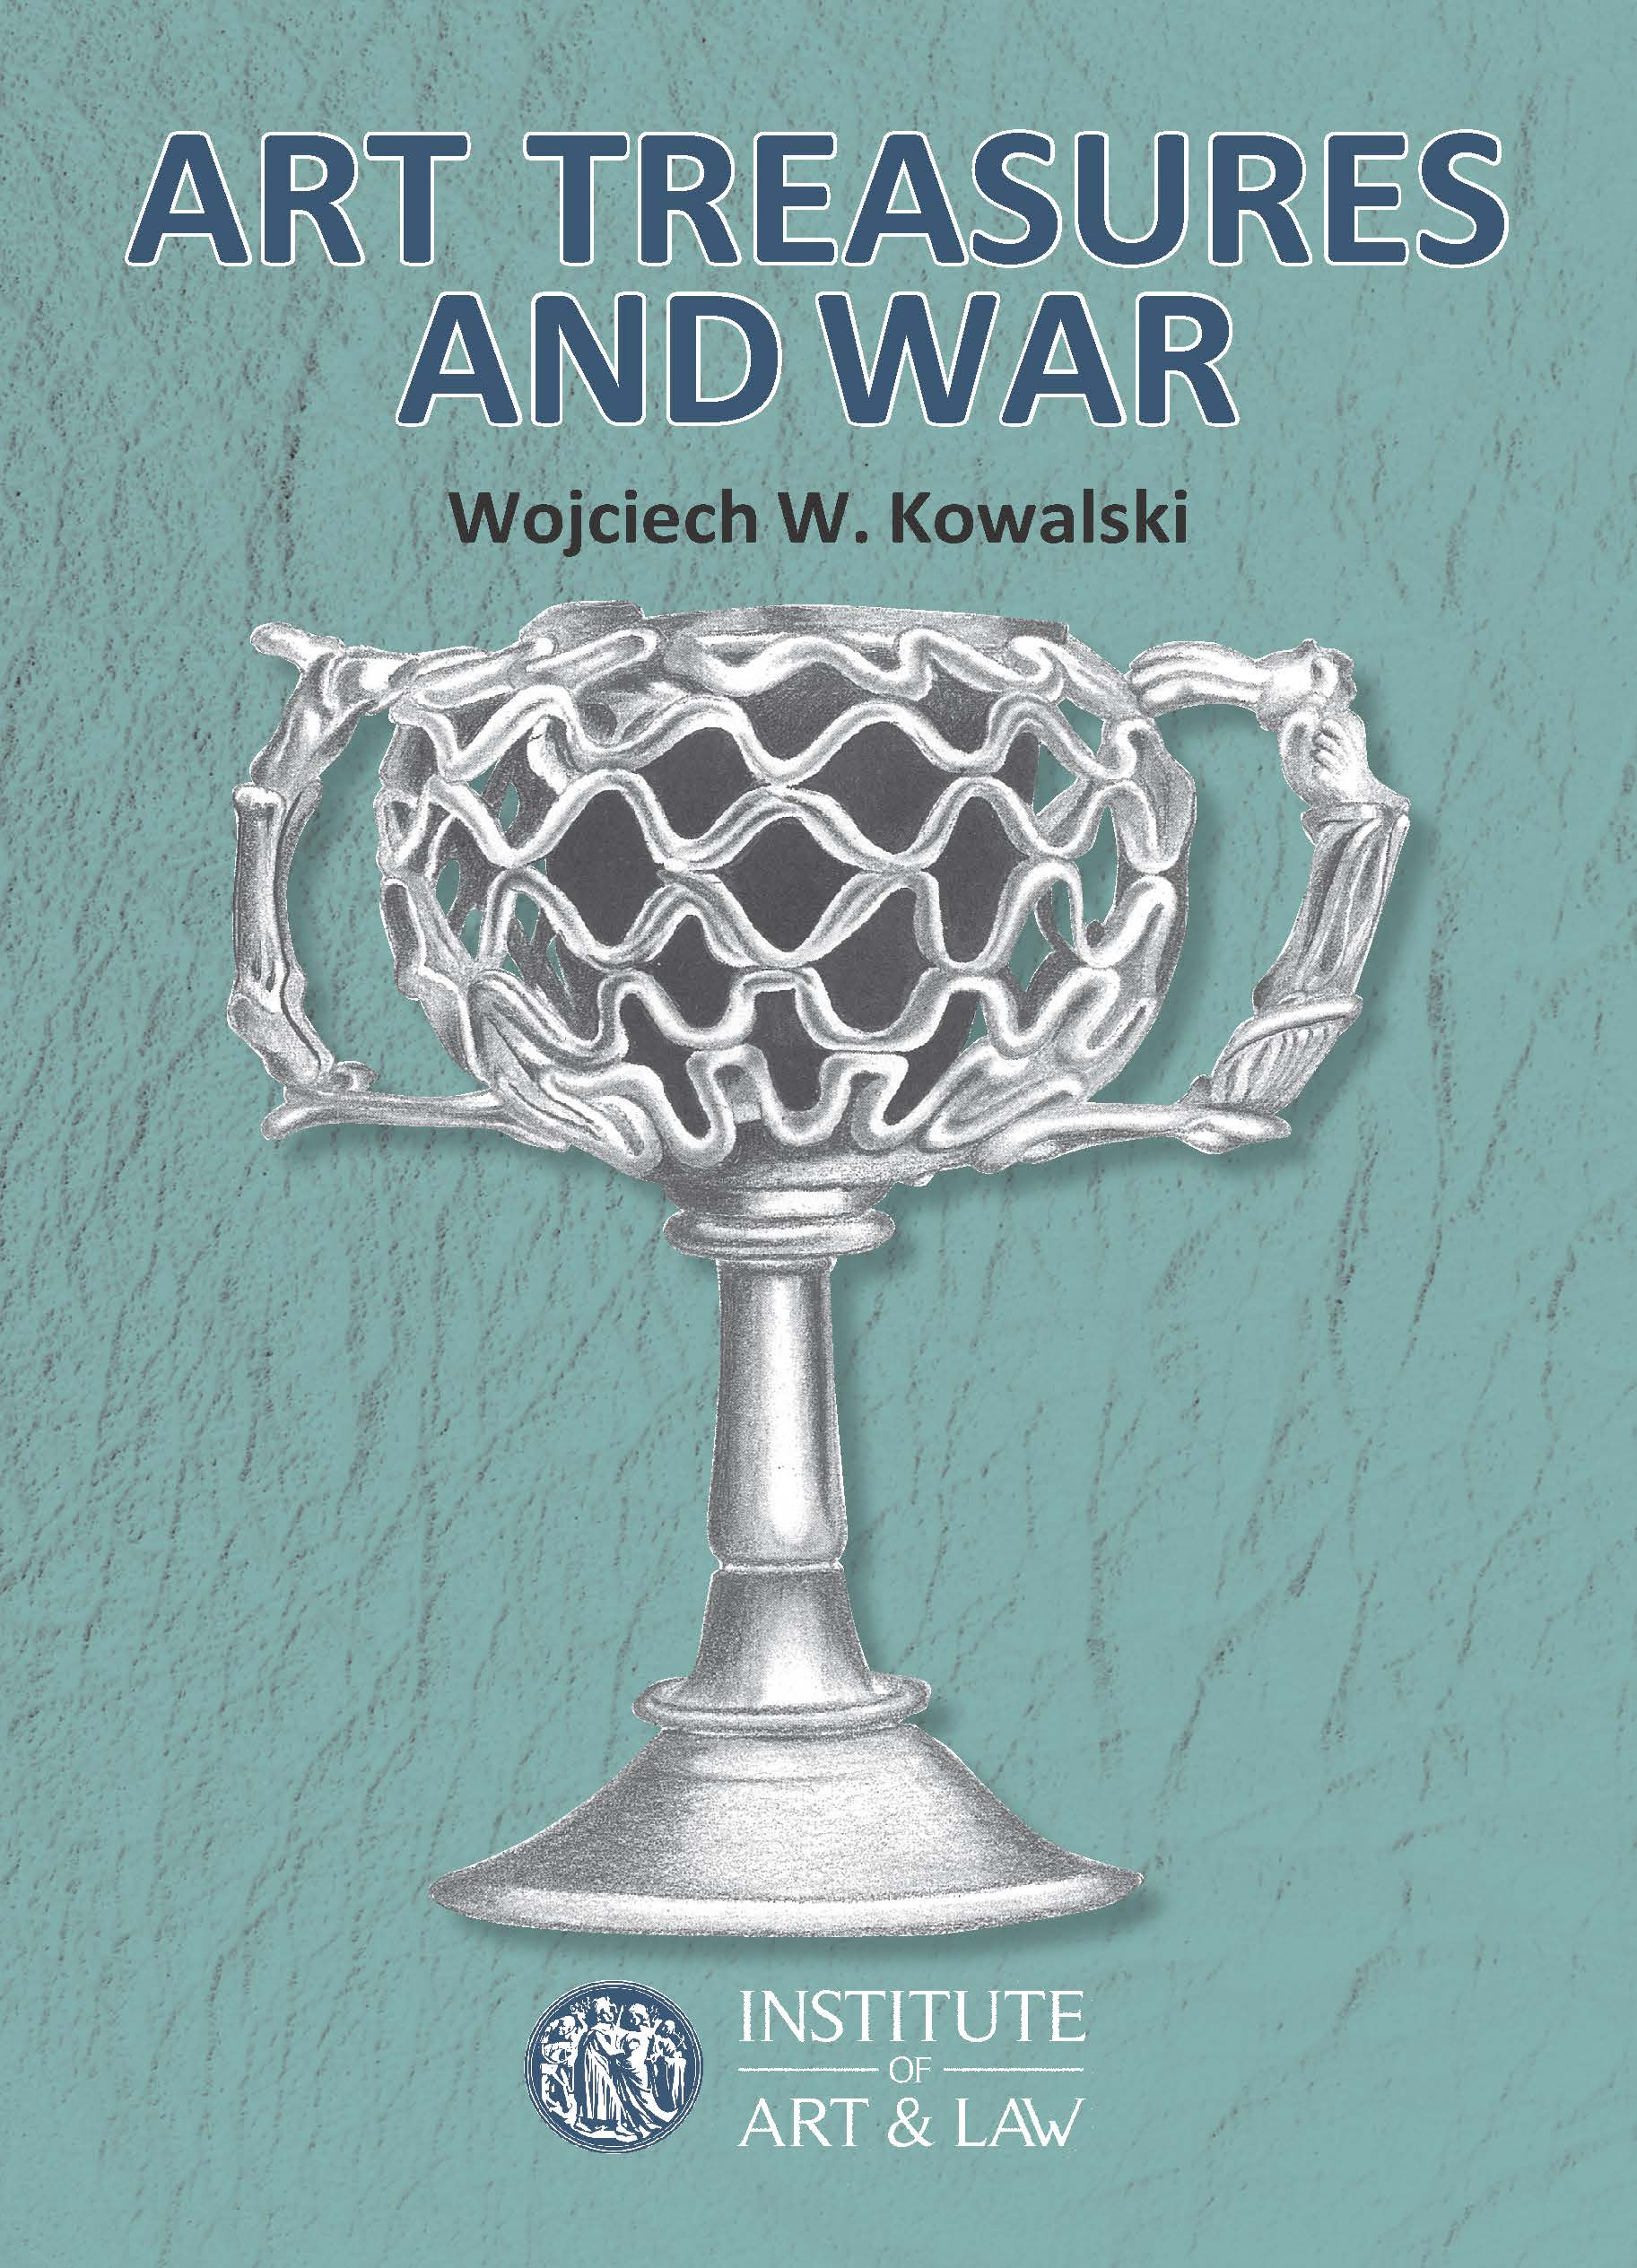 """an analysis of the international law and the gulf war Casualties during the air campaign and violations of the laws of war   assistant secretary of international security affairs henry s rowen also stated: """" the  it now took saddam's invasion of kuwait to bring on the gulf war after a   1991, the most searching analysis of the deeper issues was made by."""